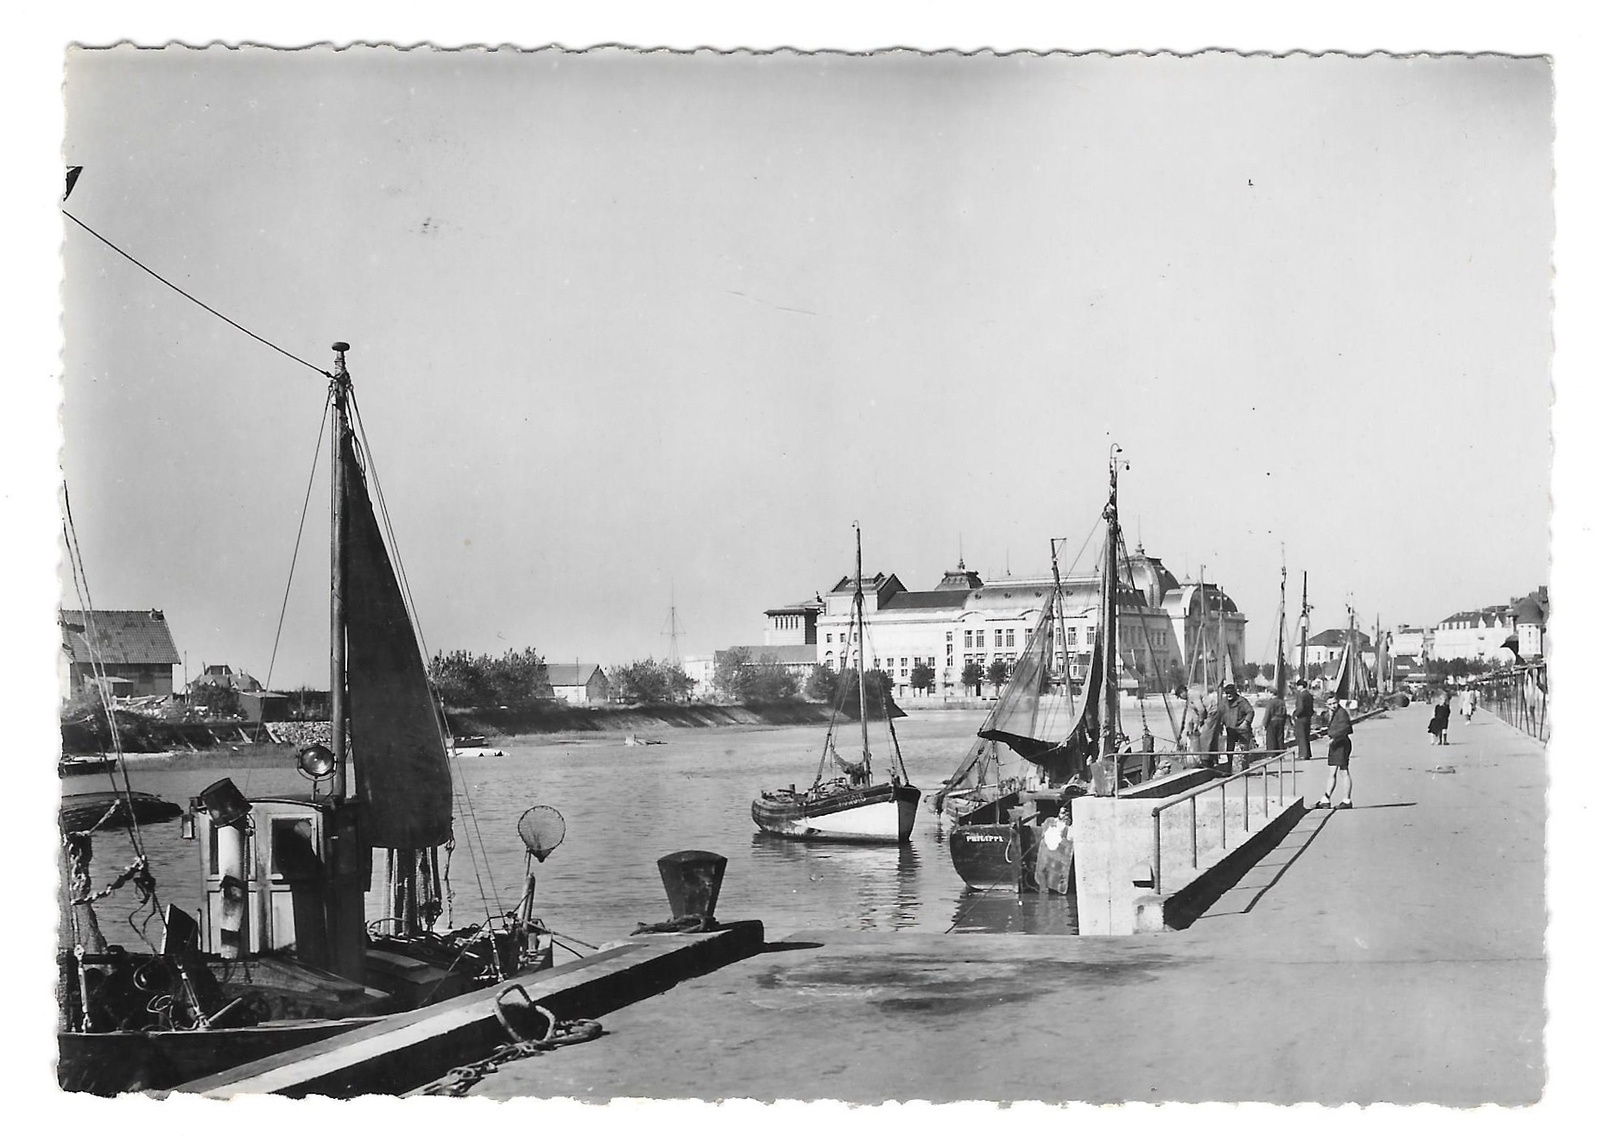 France Trouville Fishing Boats Harbor Port La Cigogne Postcard Glossy Photo 4X6